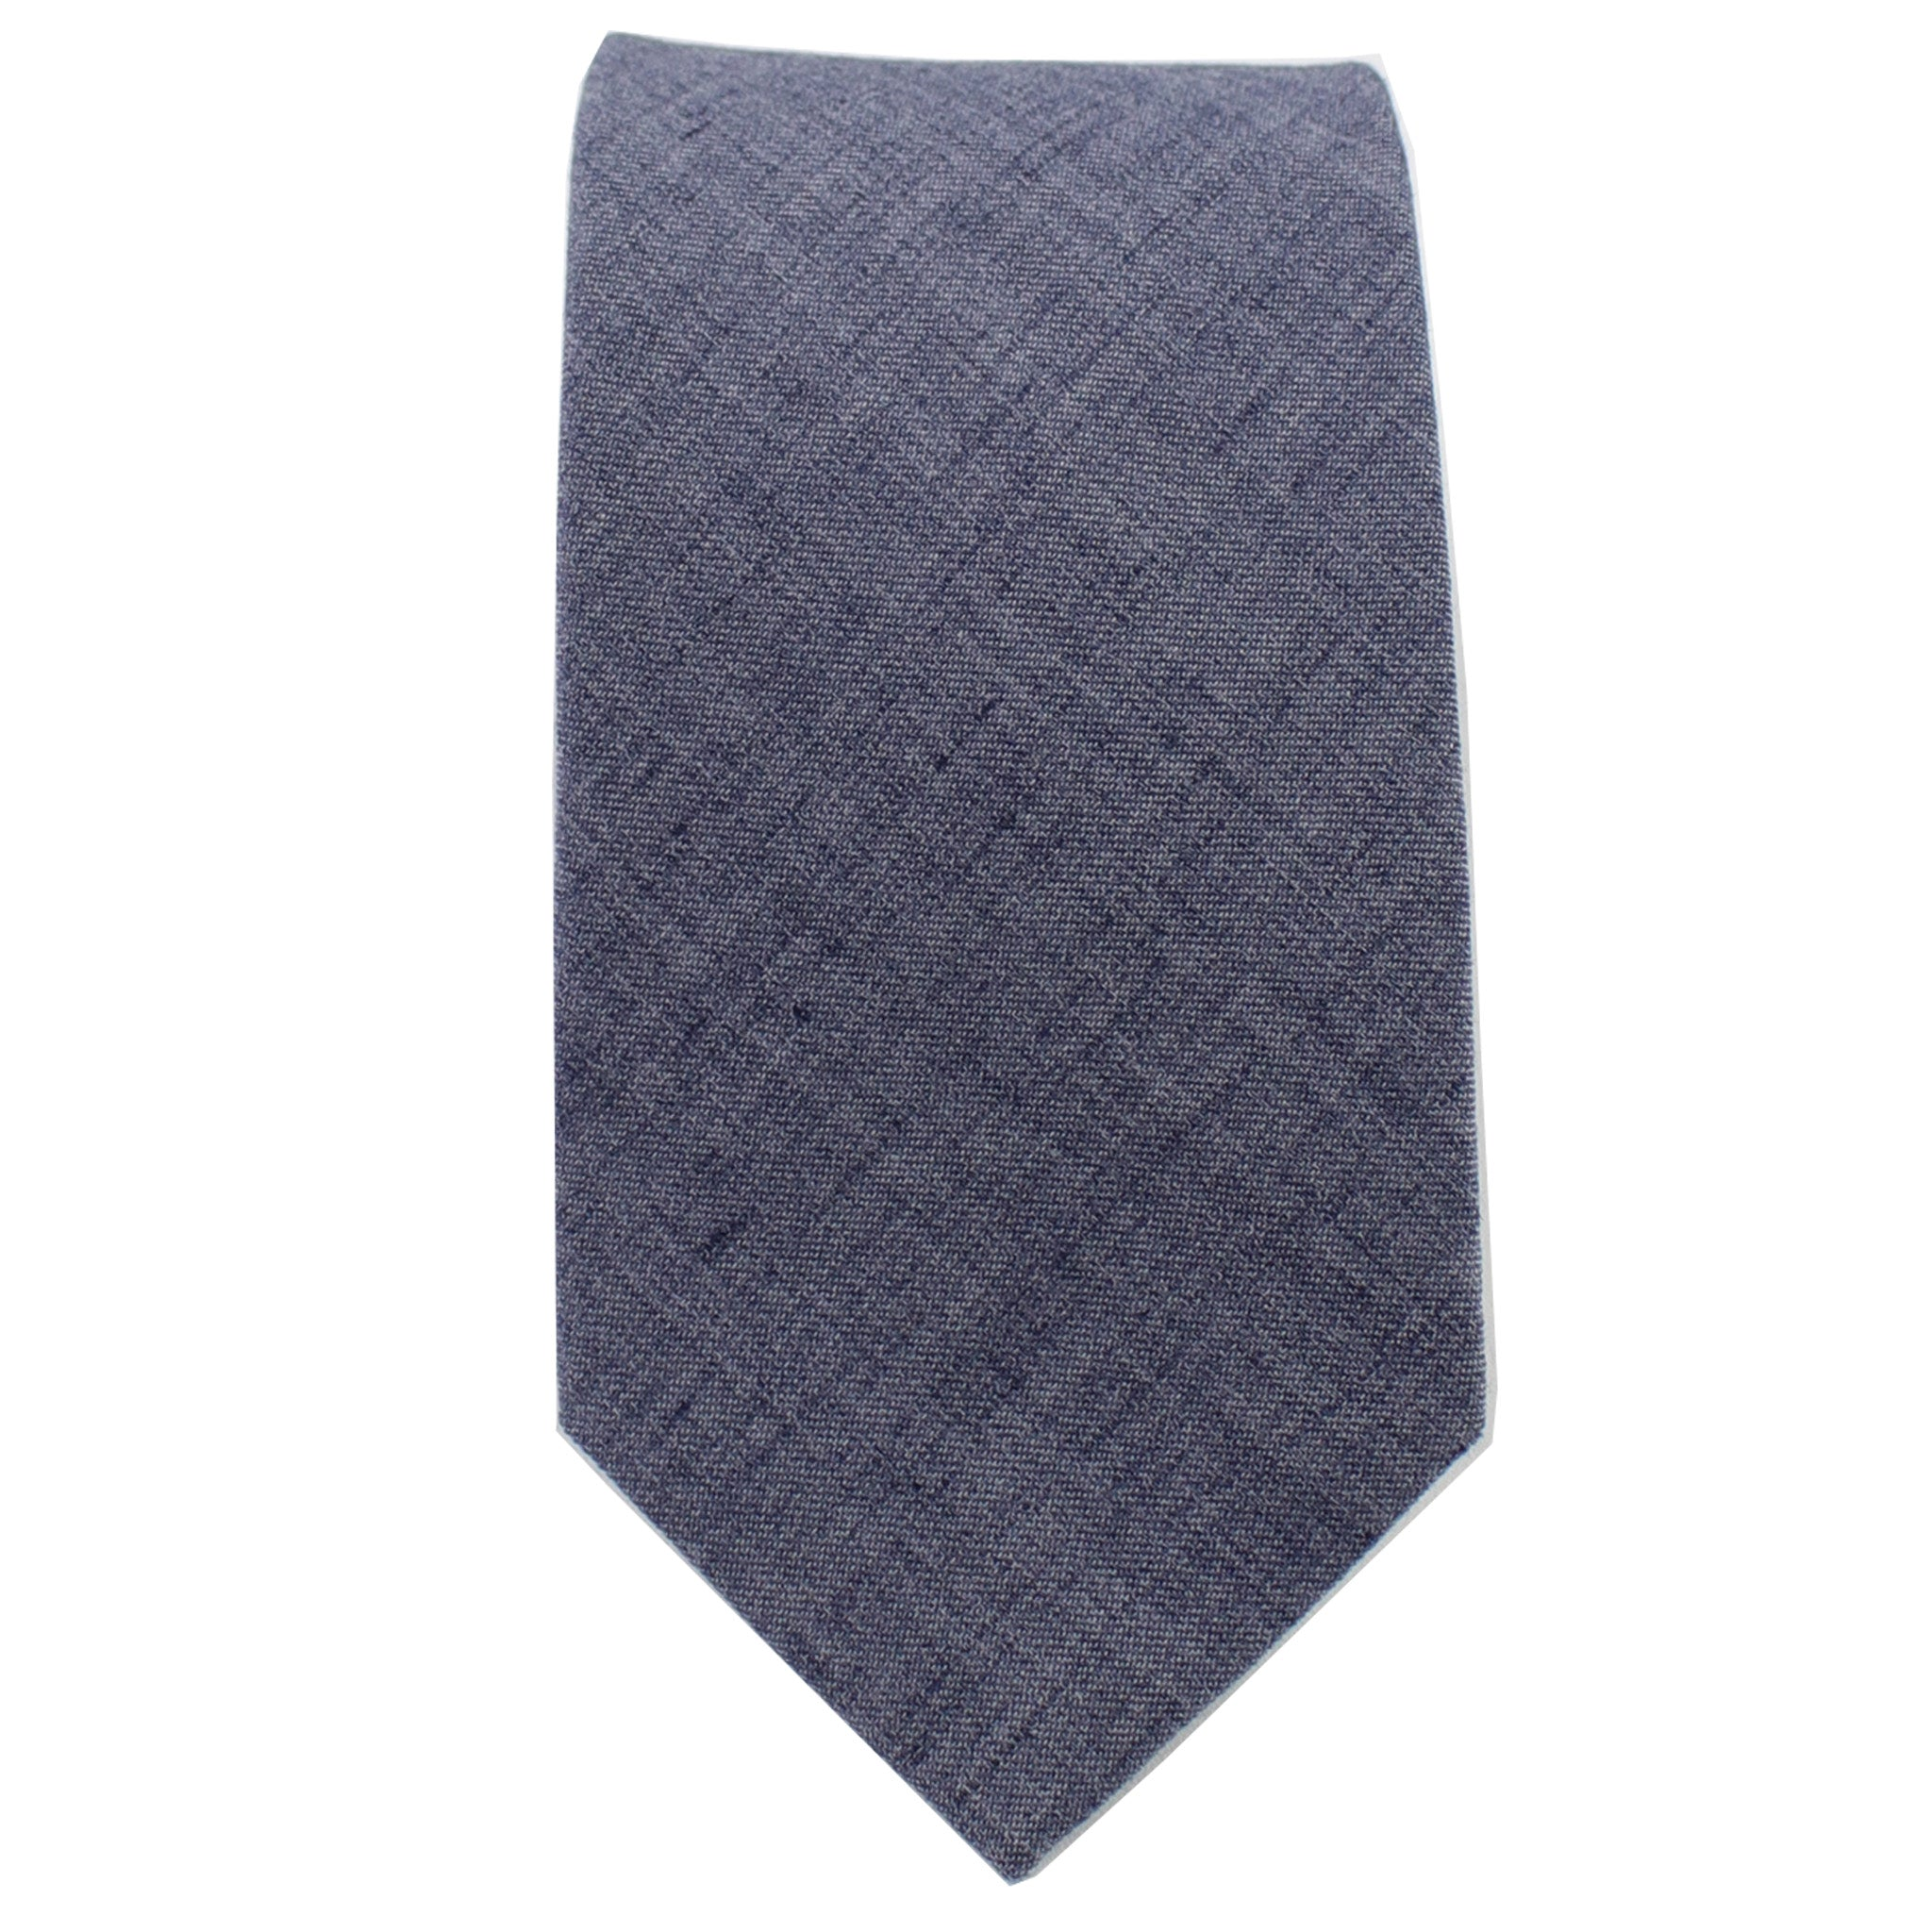 Lightweight Navy Tie from DIBI